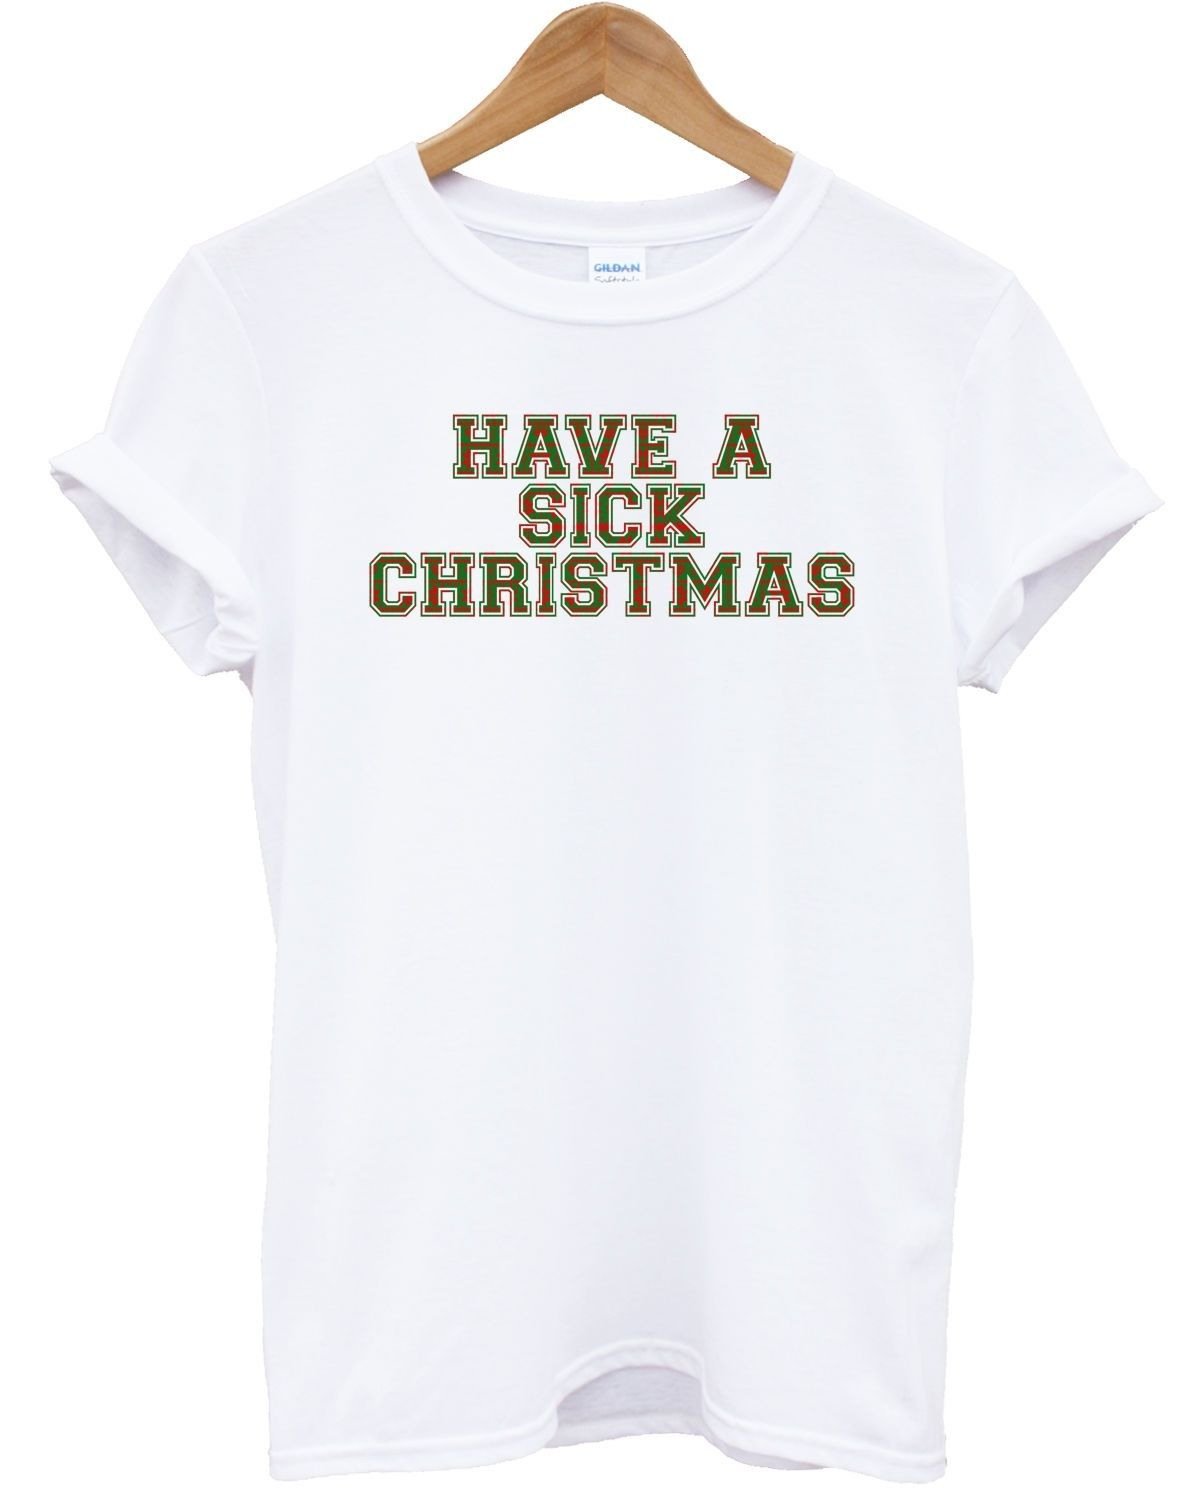 Have A Sick Christmas T Shirt Hipster Fashion Tumblr Swag Present Gift Secret